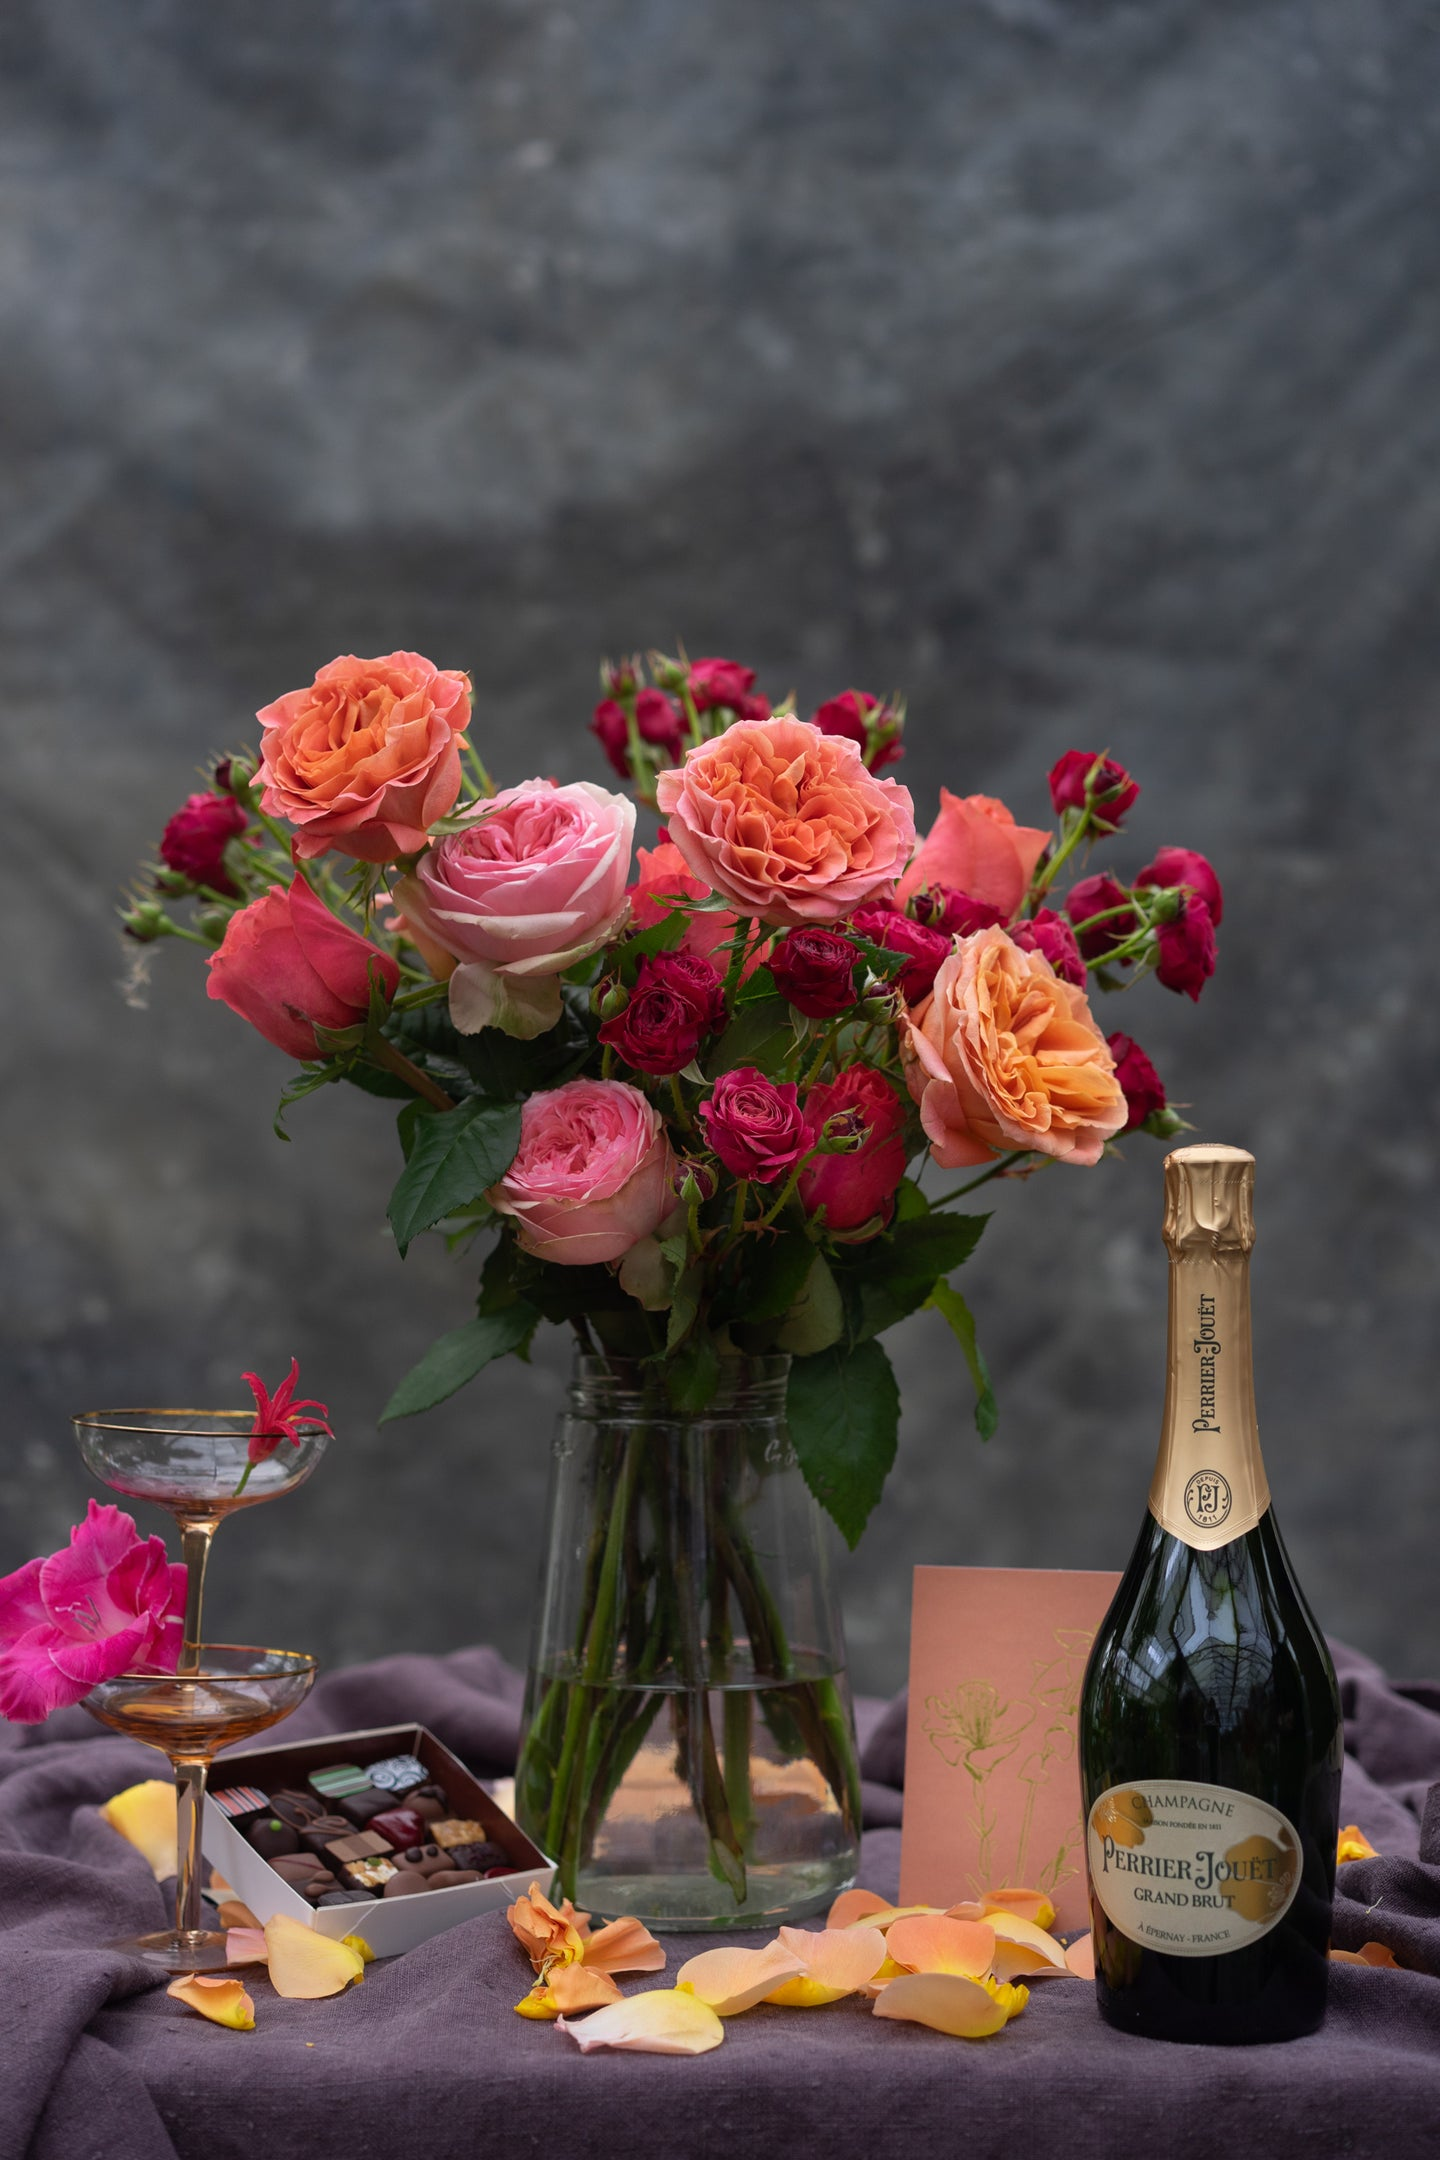 Rosie Posie Champagne Days - celebrate each and every day!